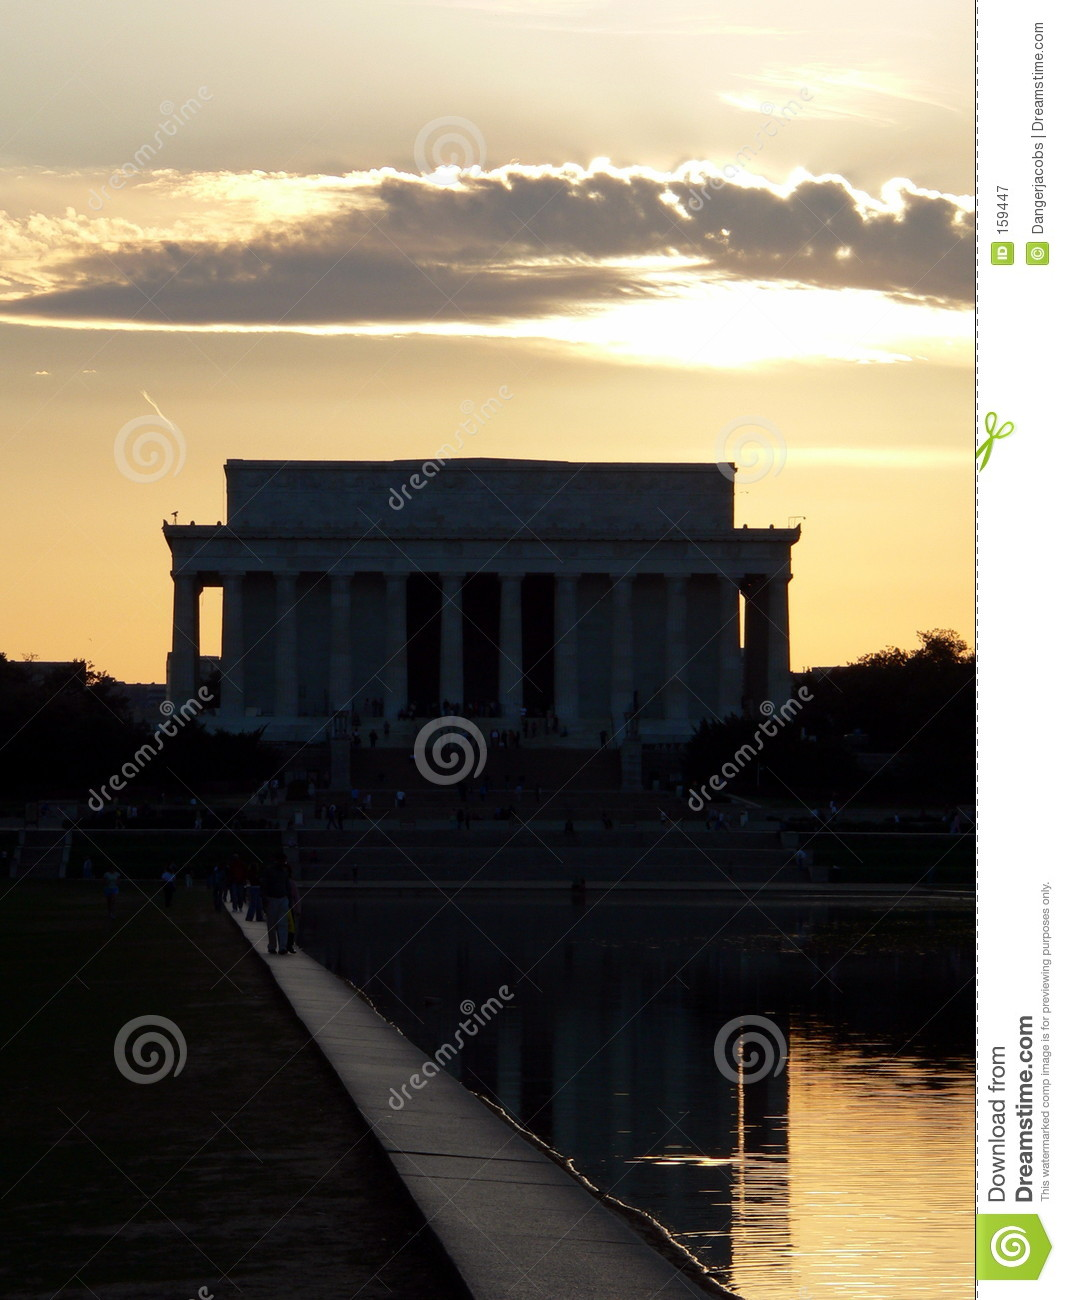 Het Gedenkteken van Lincoln in Washington DC (District van Colombia) bij zonsondergang